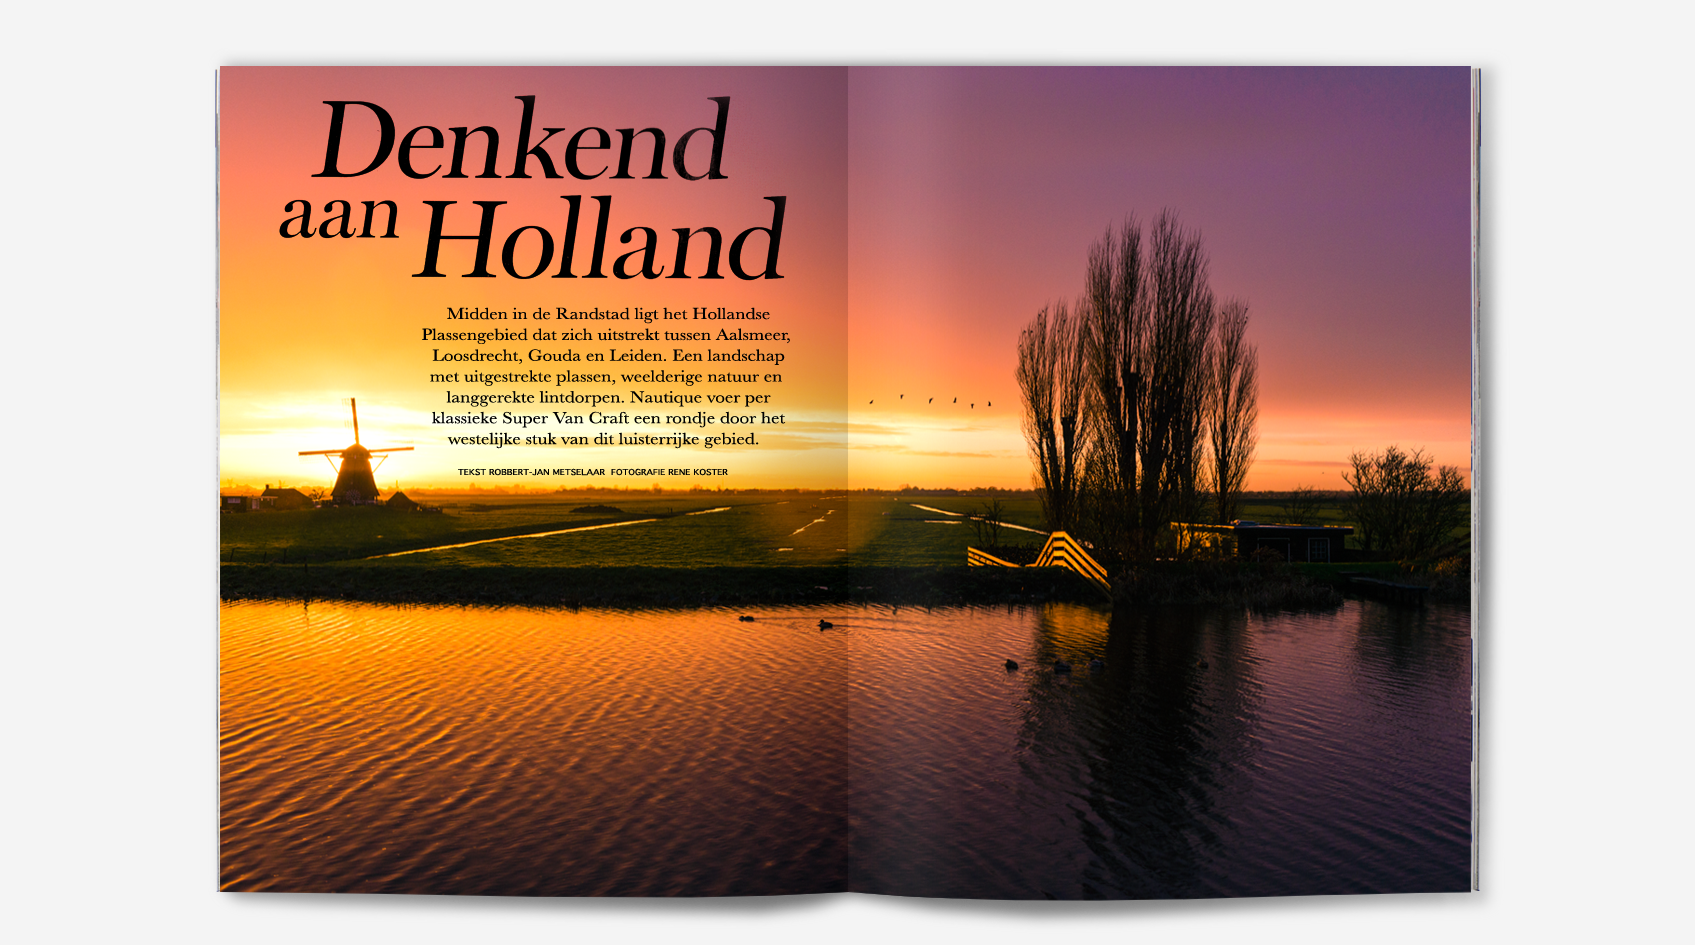 rene_koster_ntq_holland_tearsheets_01.png